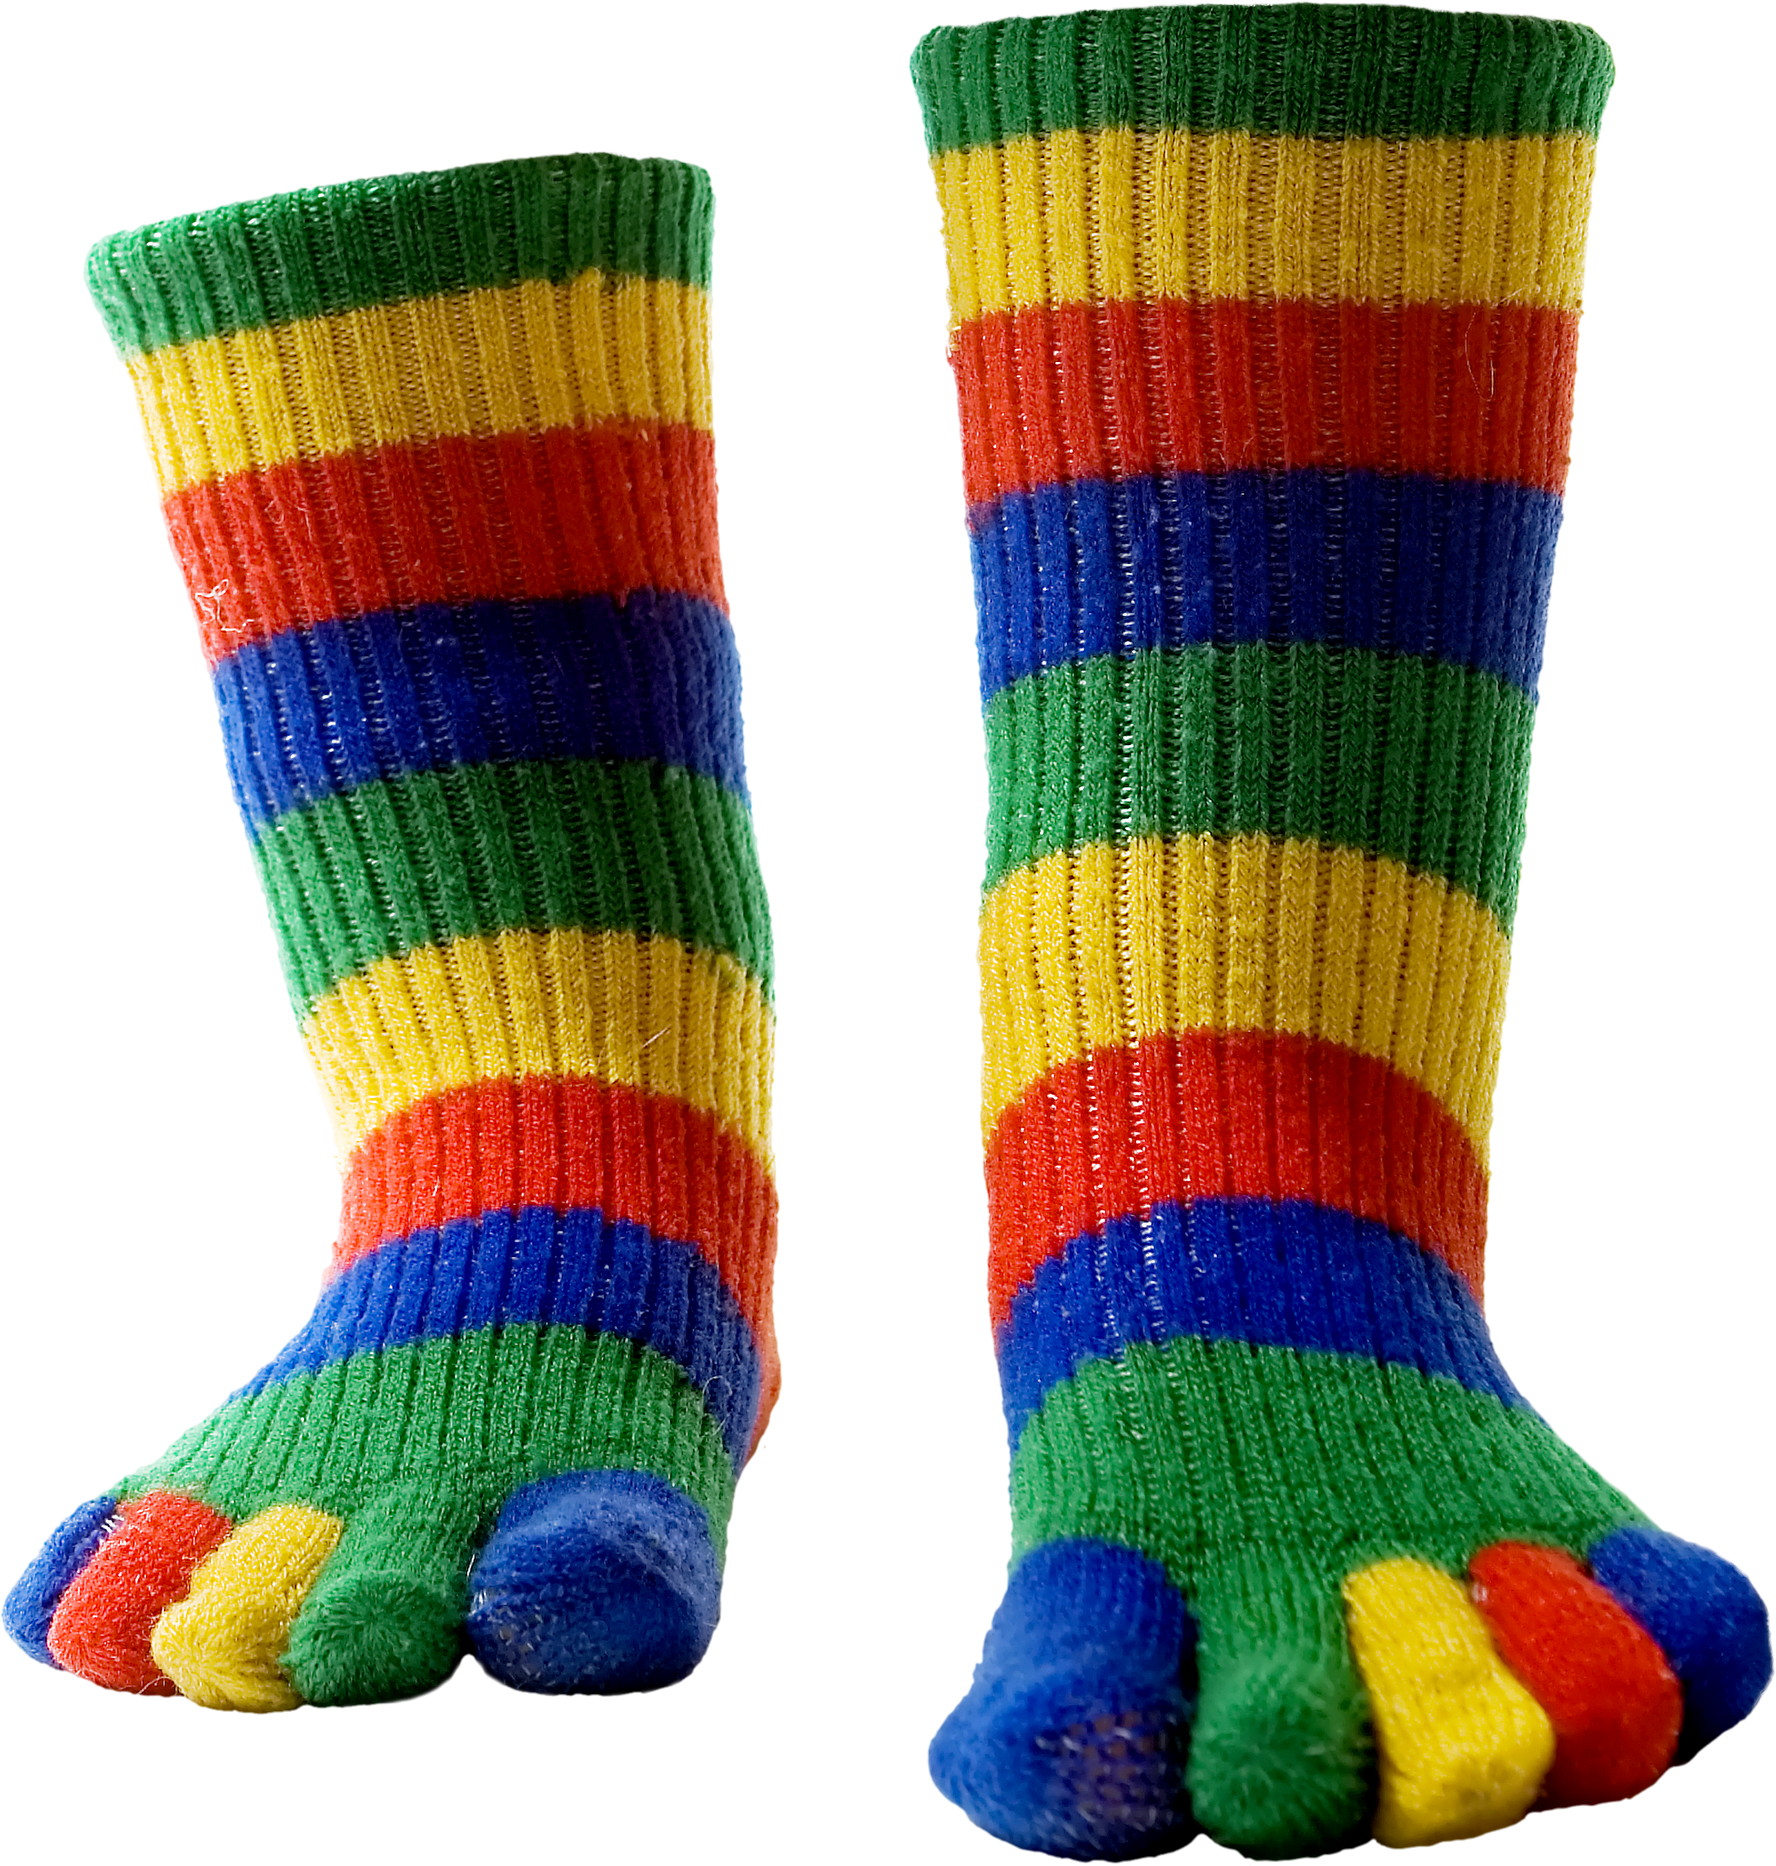 Sock clipart knitted sock. Socks png image purepng